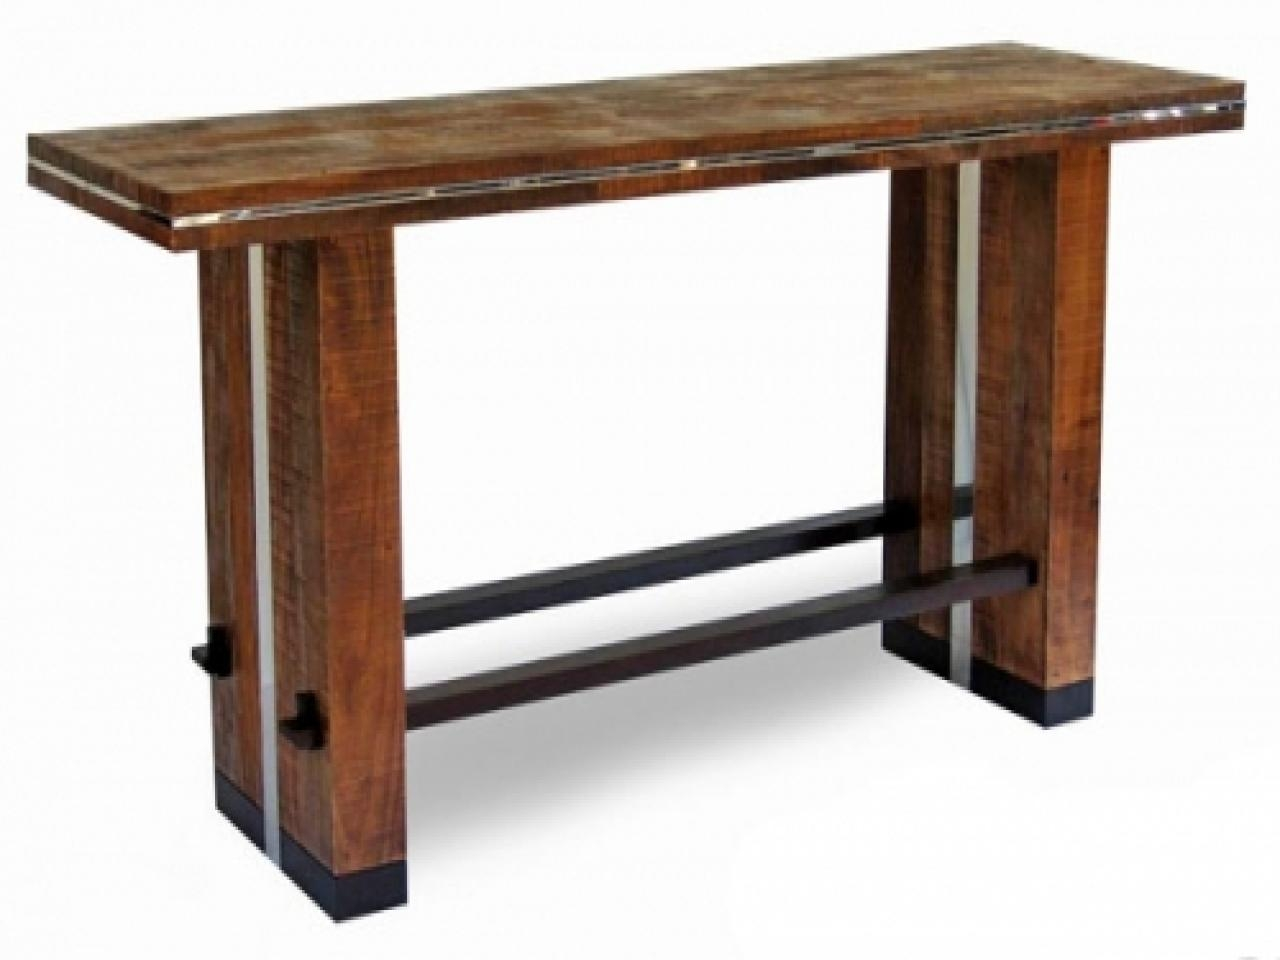 Counter Height Sofa Table | Sofa Gallery | Kengire In Counter Height Sofa Tables (View 16 of 20)